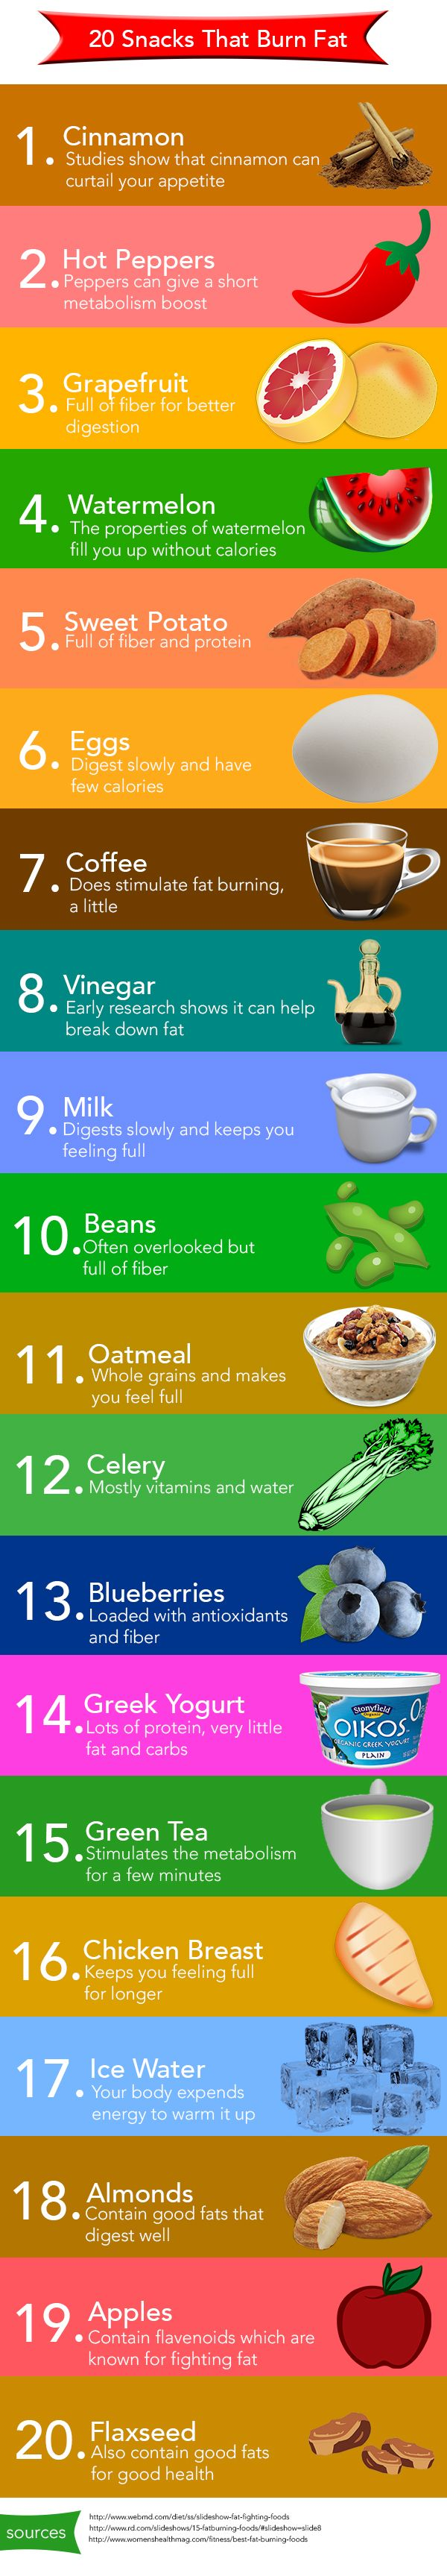 20 simple foods that burn fat